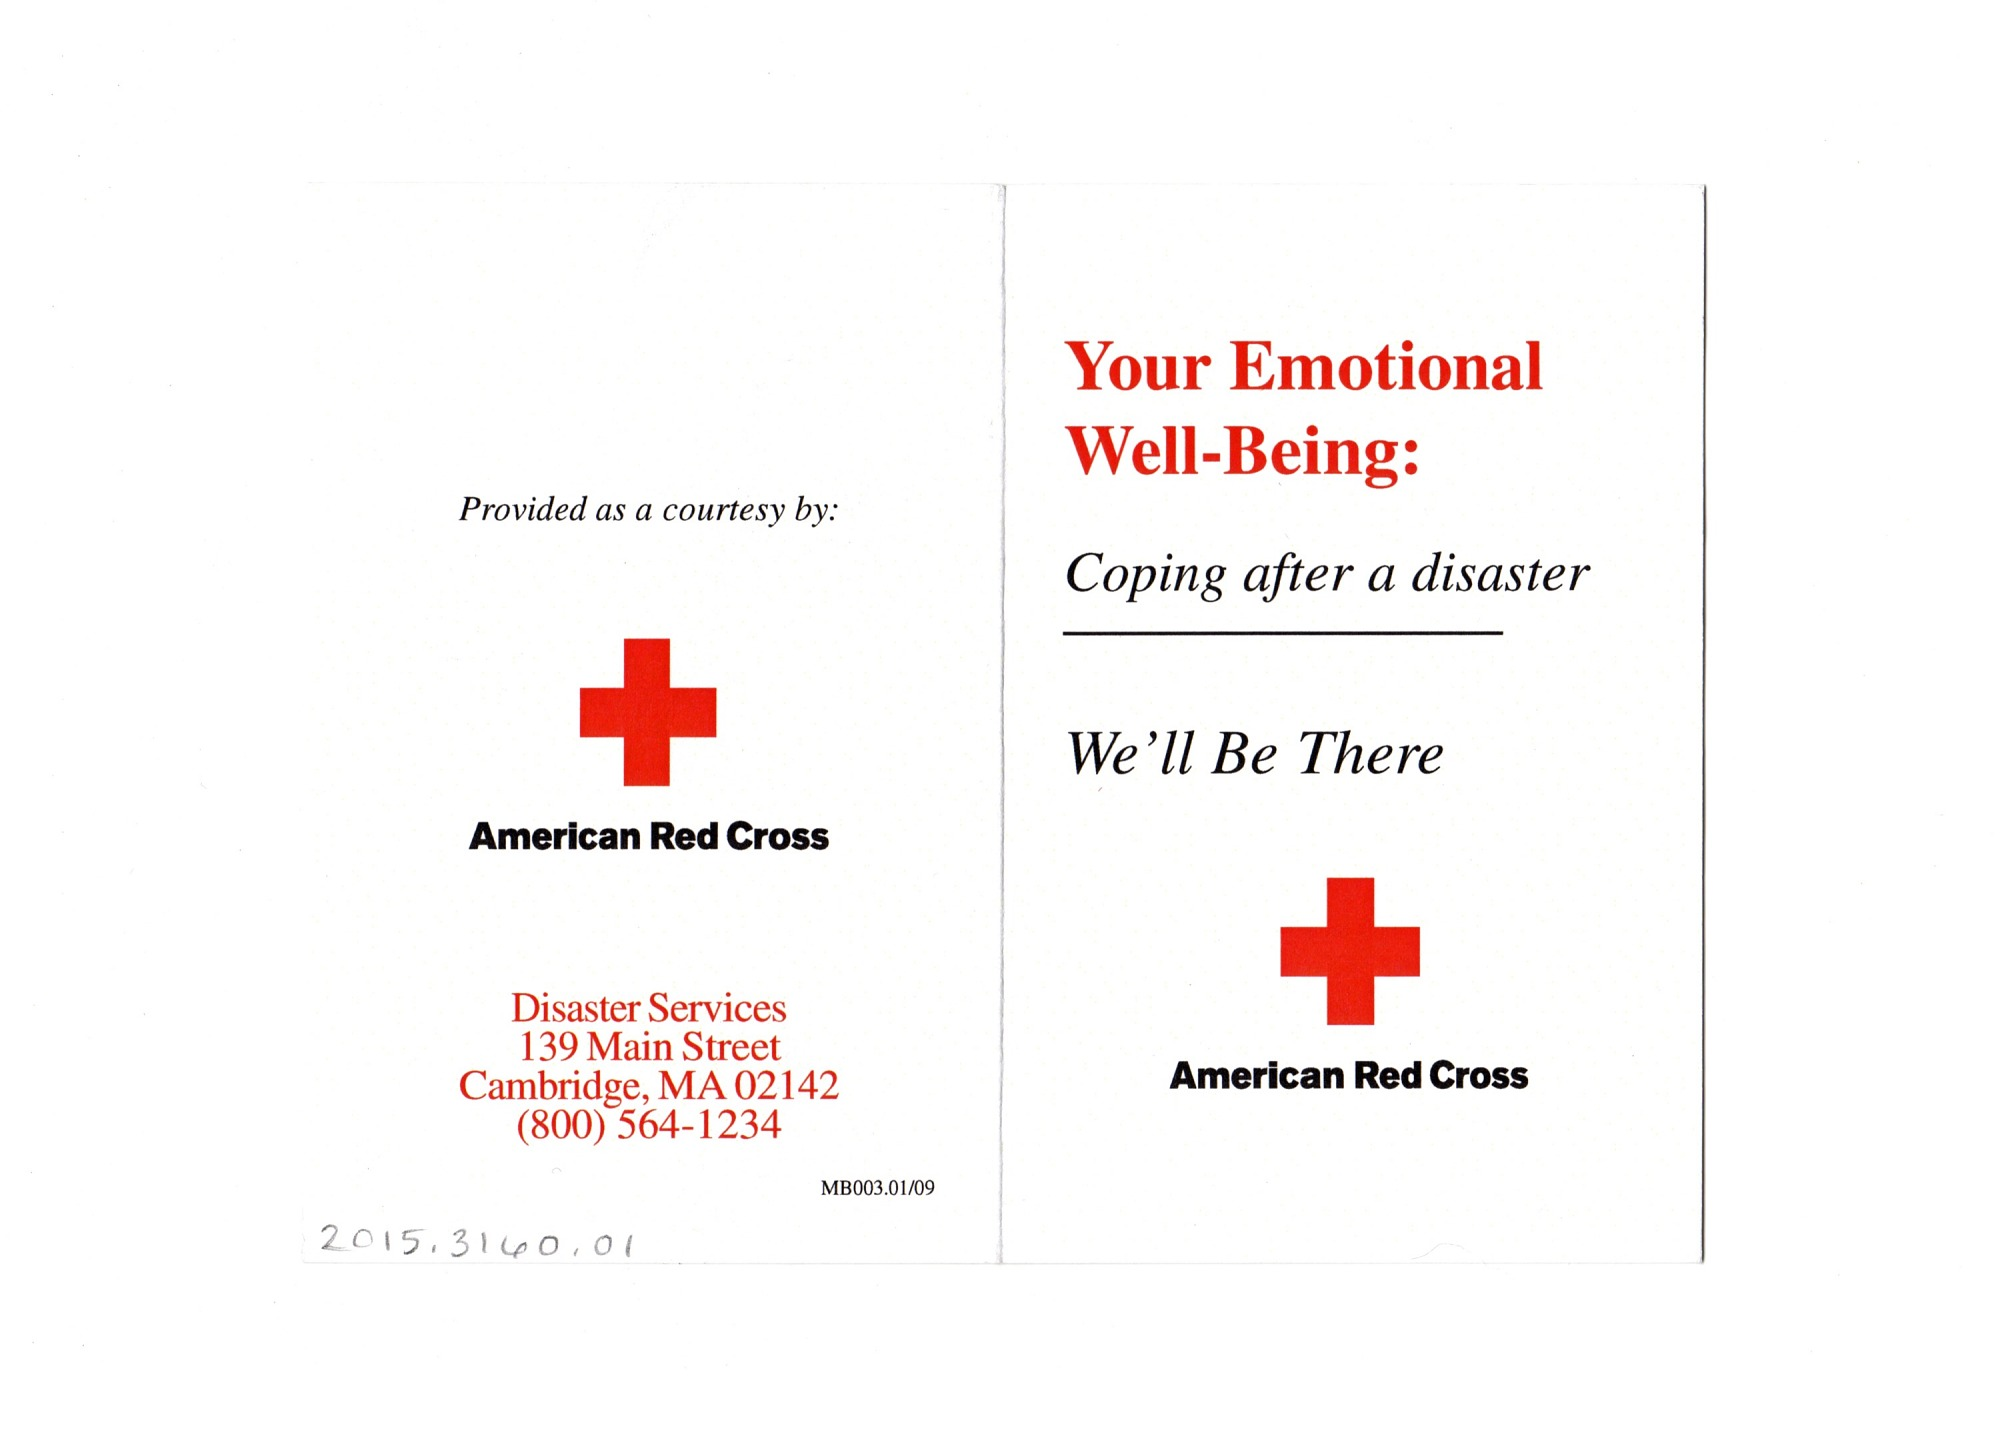 Your Emotional Well-Being: Coping after a disaster